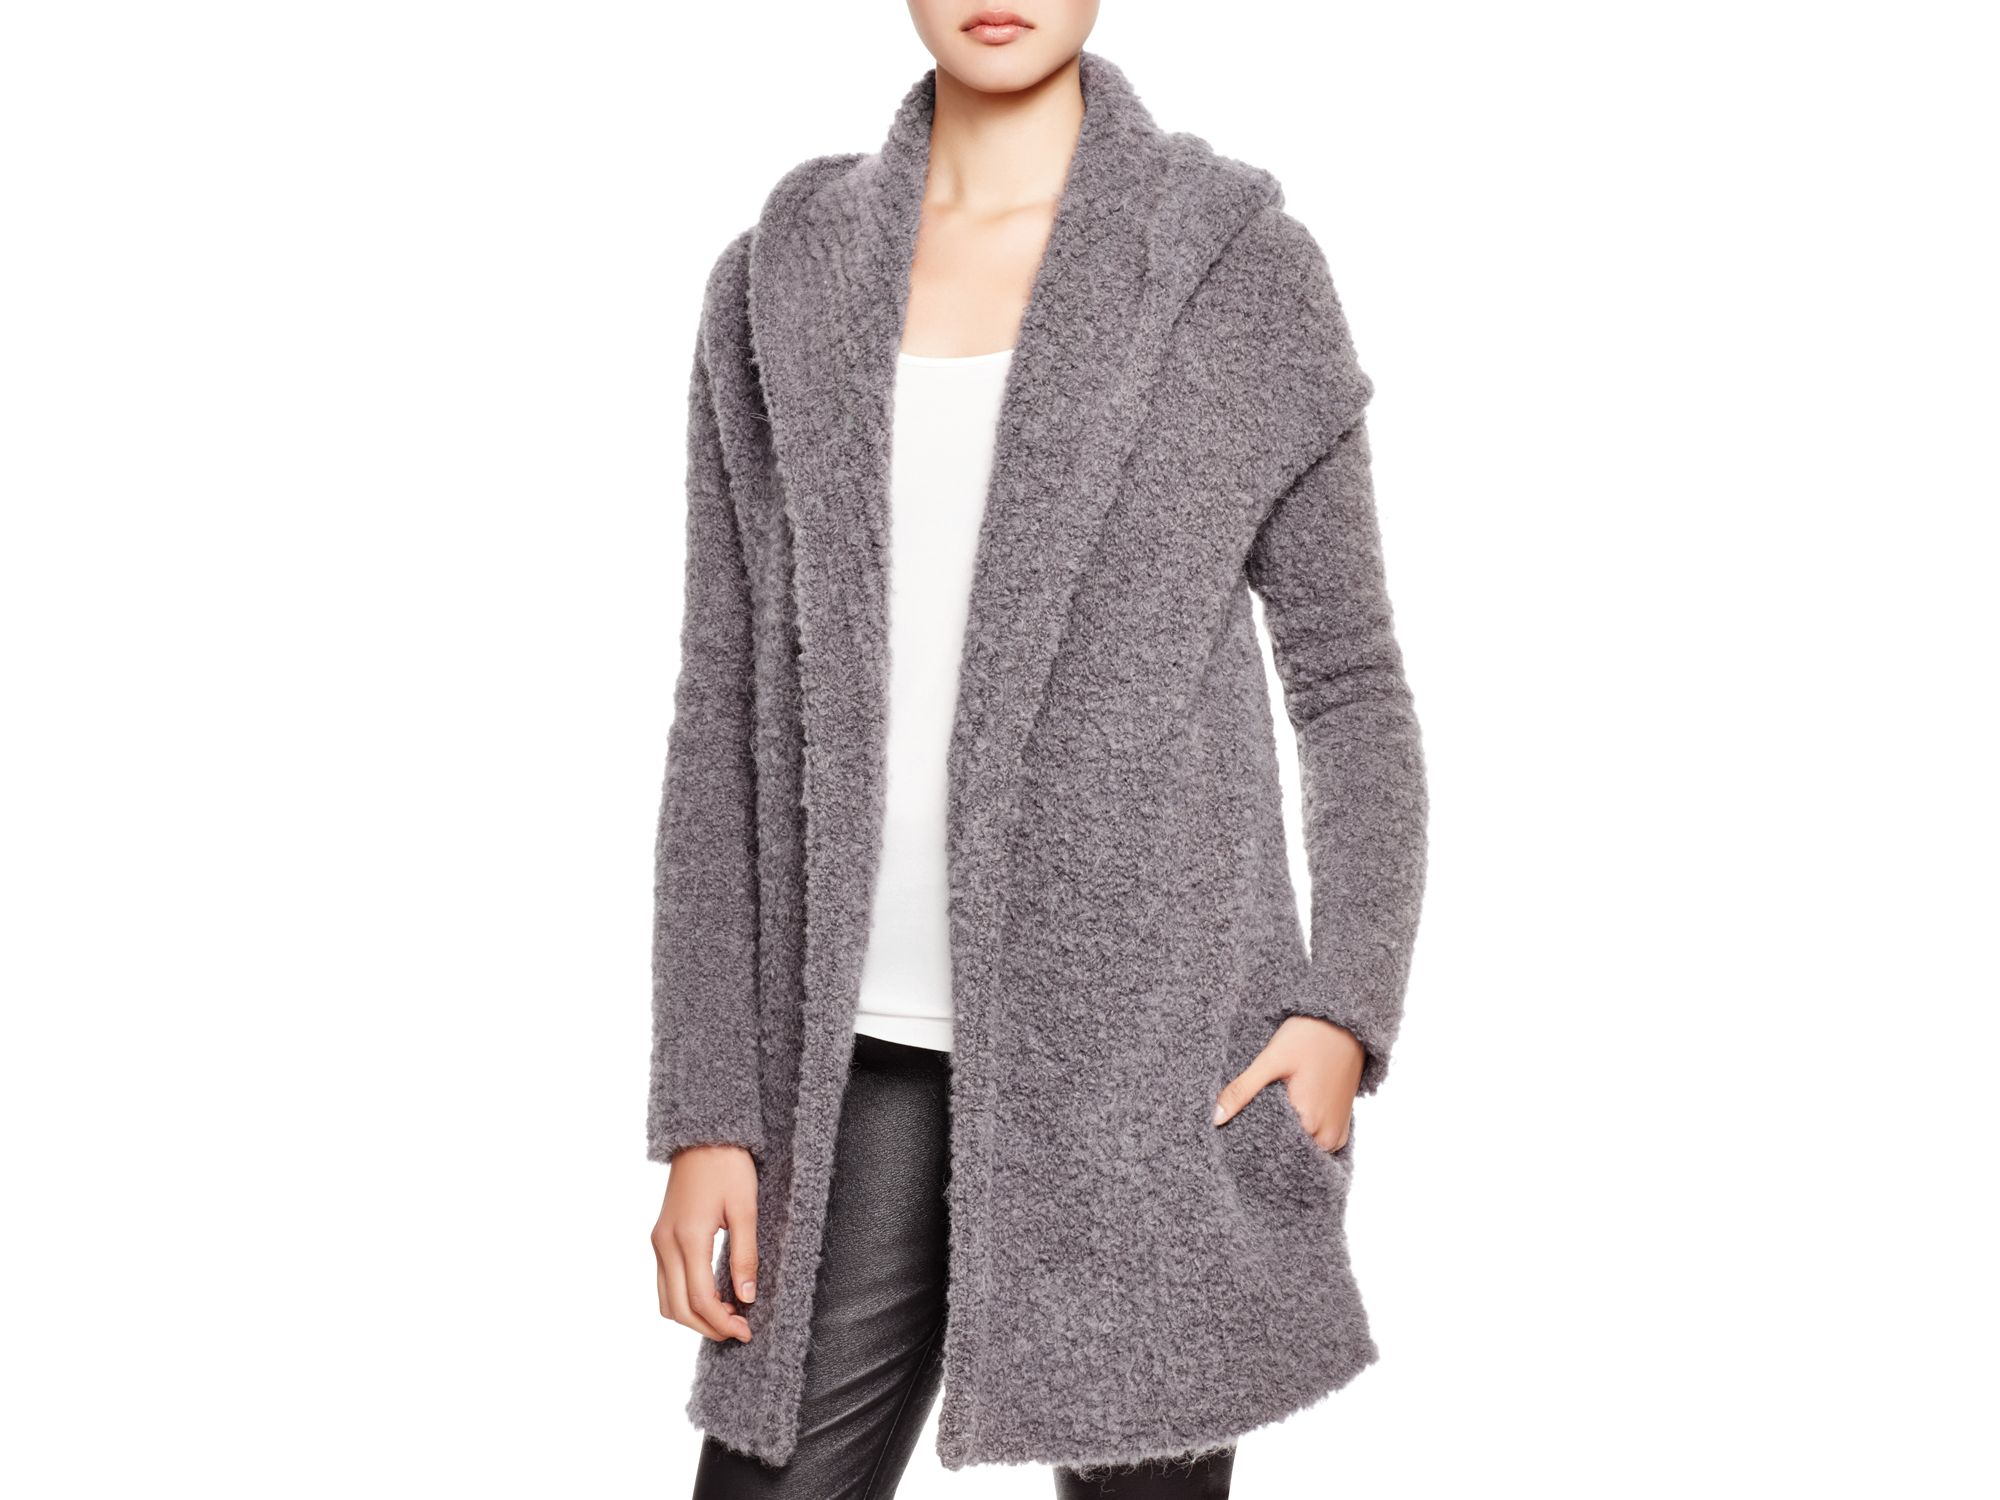 Cheap Visa Payment Discount Best Seller Joie Woman Bouclé Cardigan Gray Size M Joie Top Quality Cheap Price Free Shipping Footlocker Finishline uYtWew